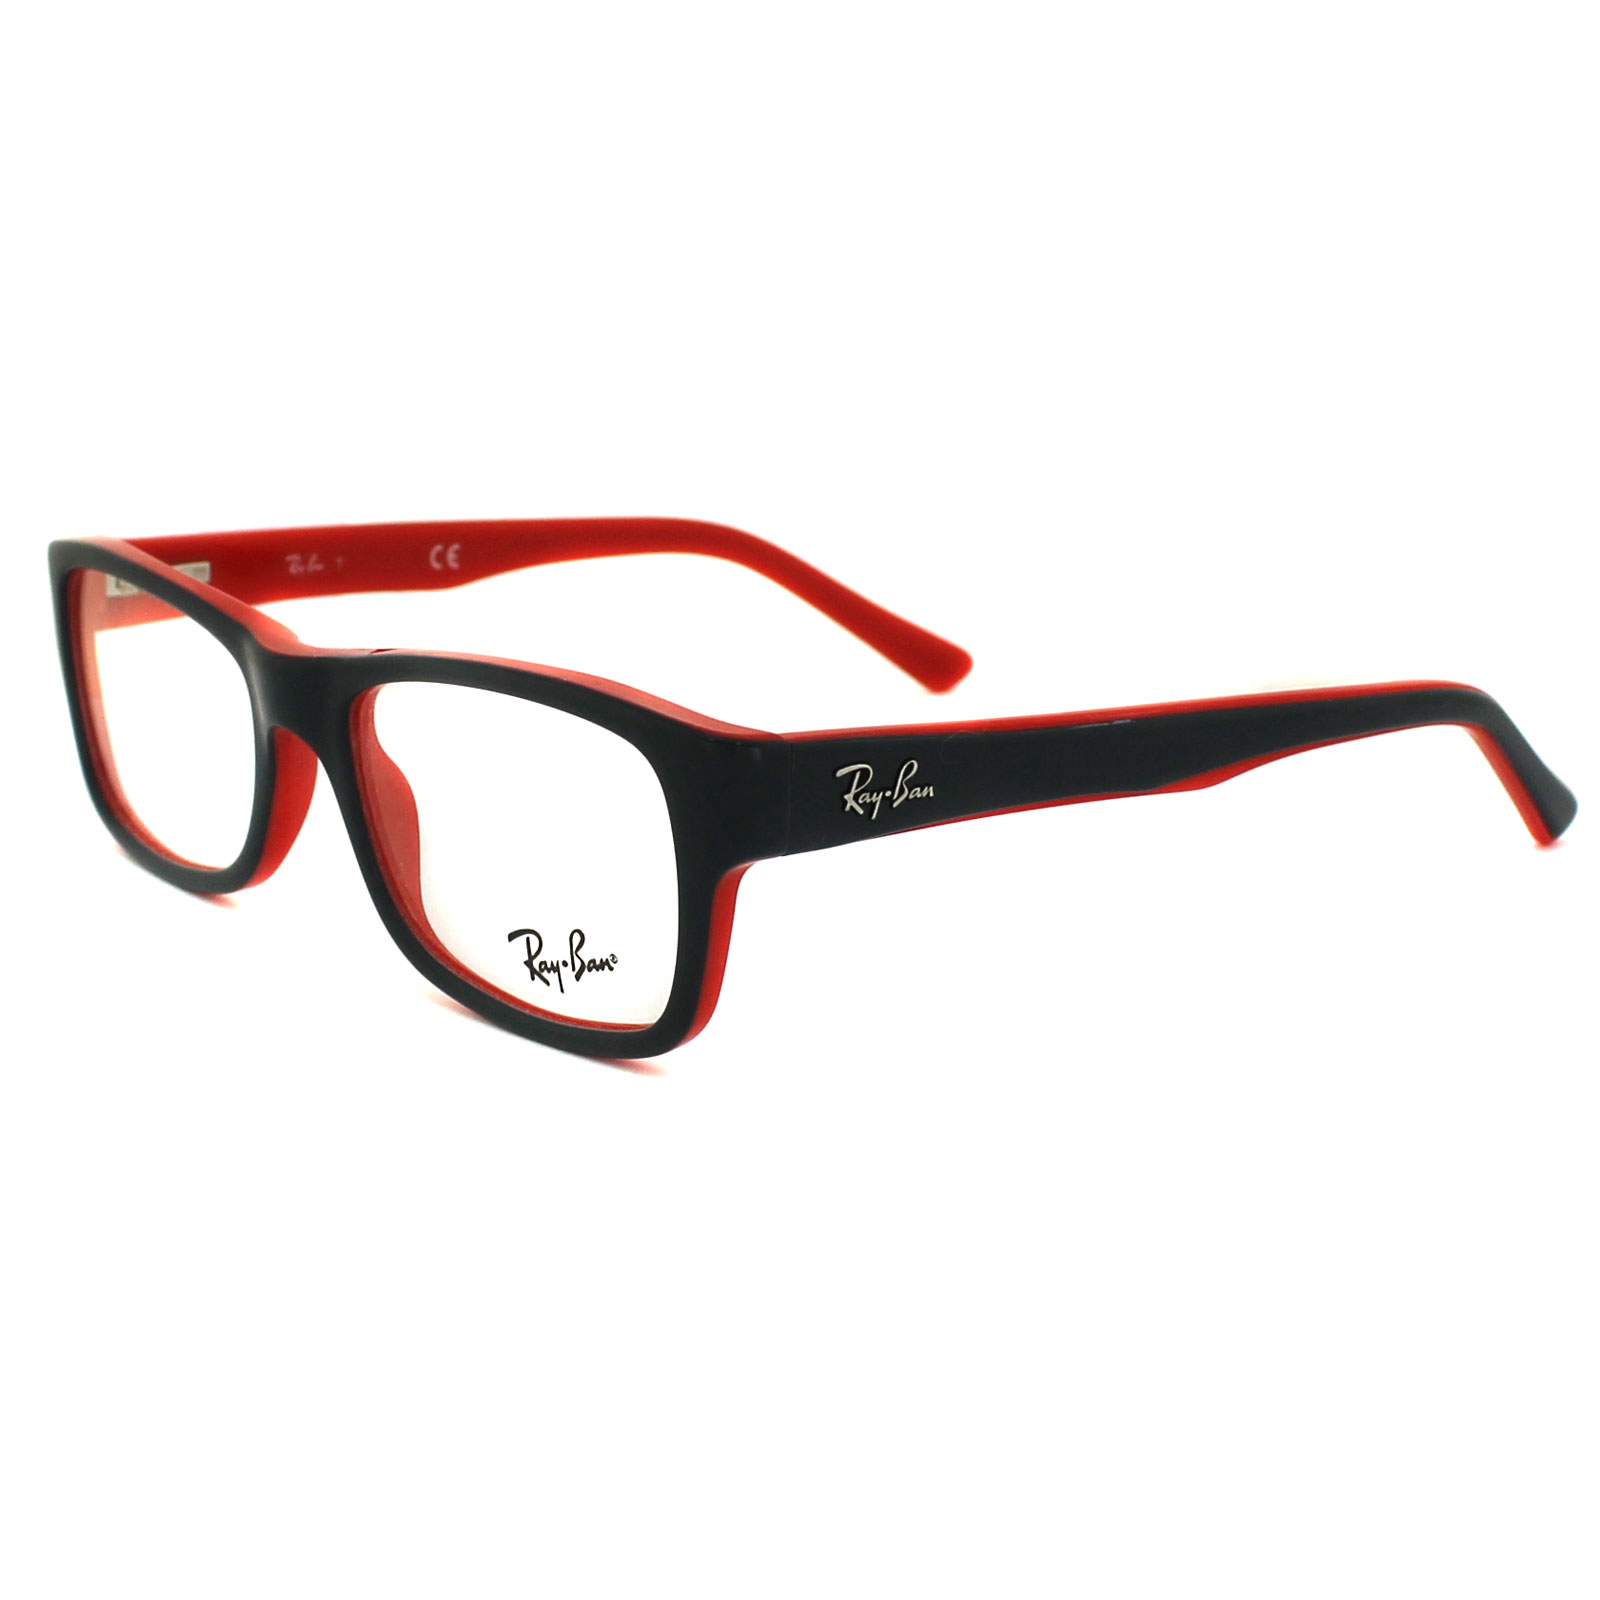 Ray-Ban Glasses Frames 5268 5180 Top Grey On Red 50mm eBay